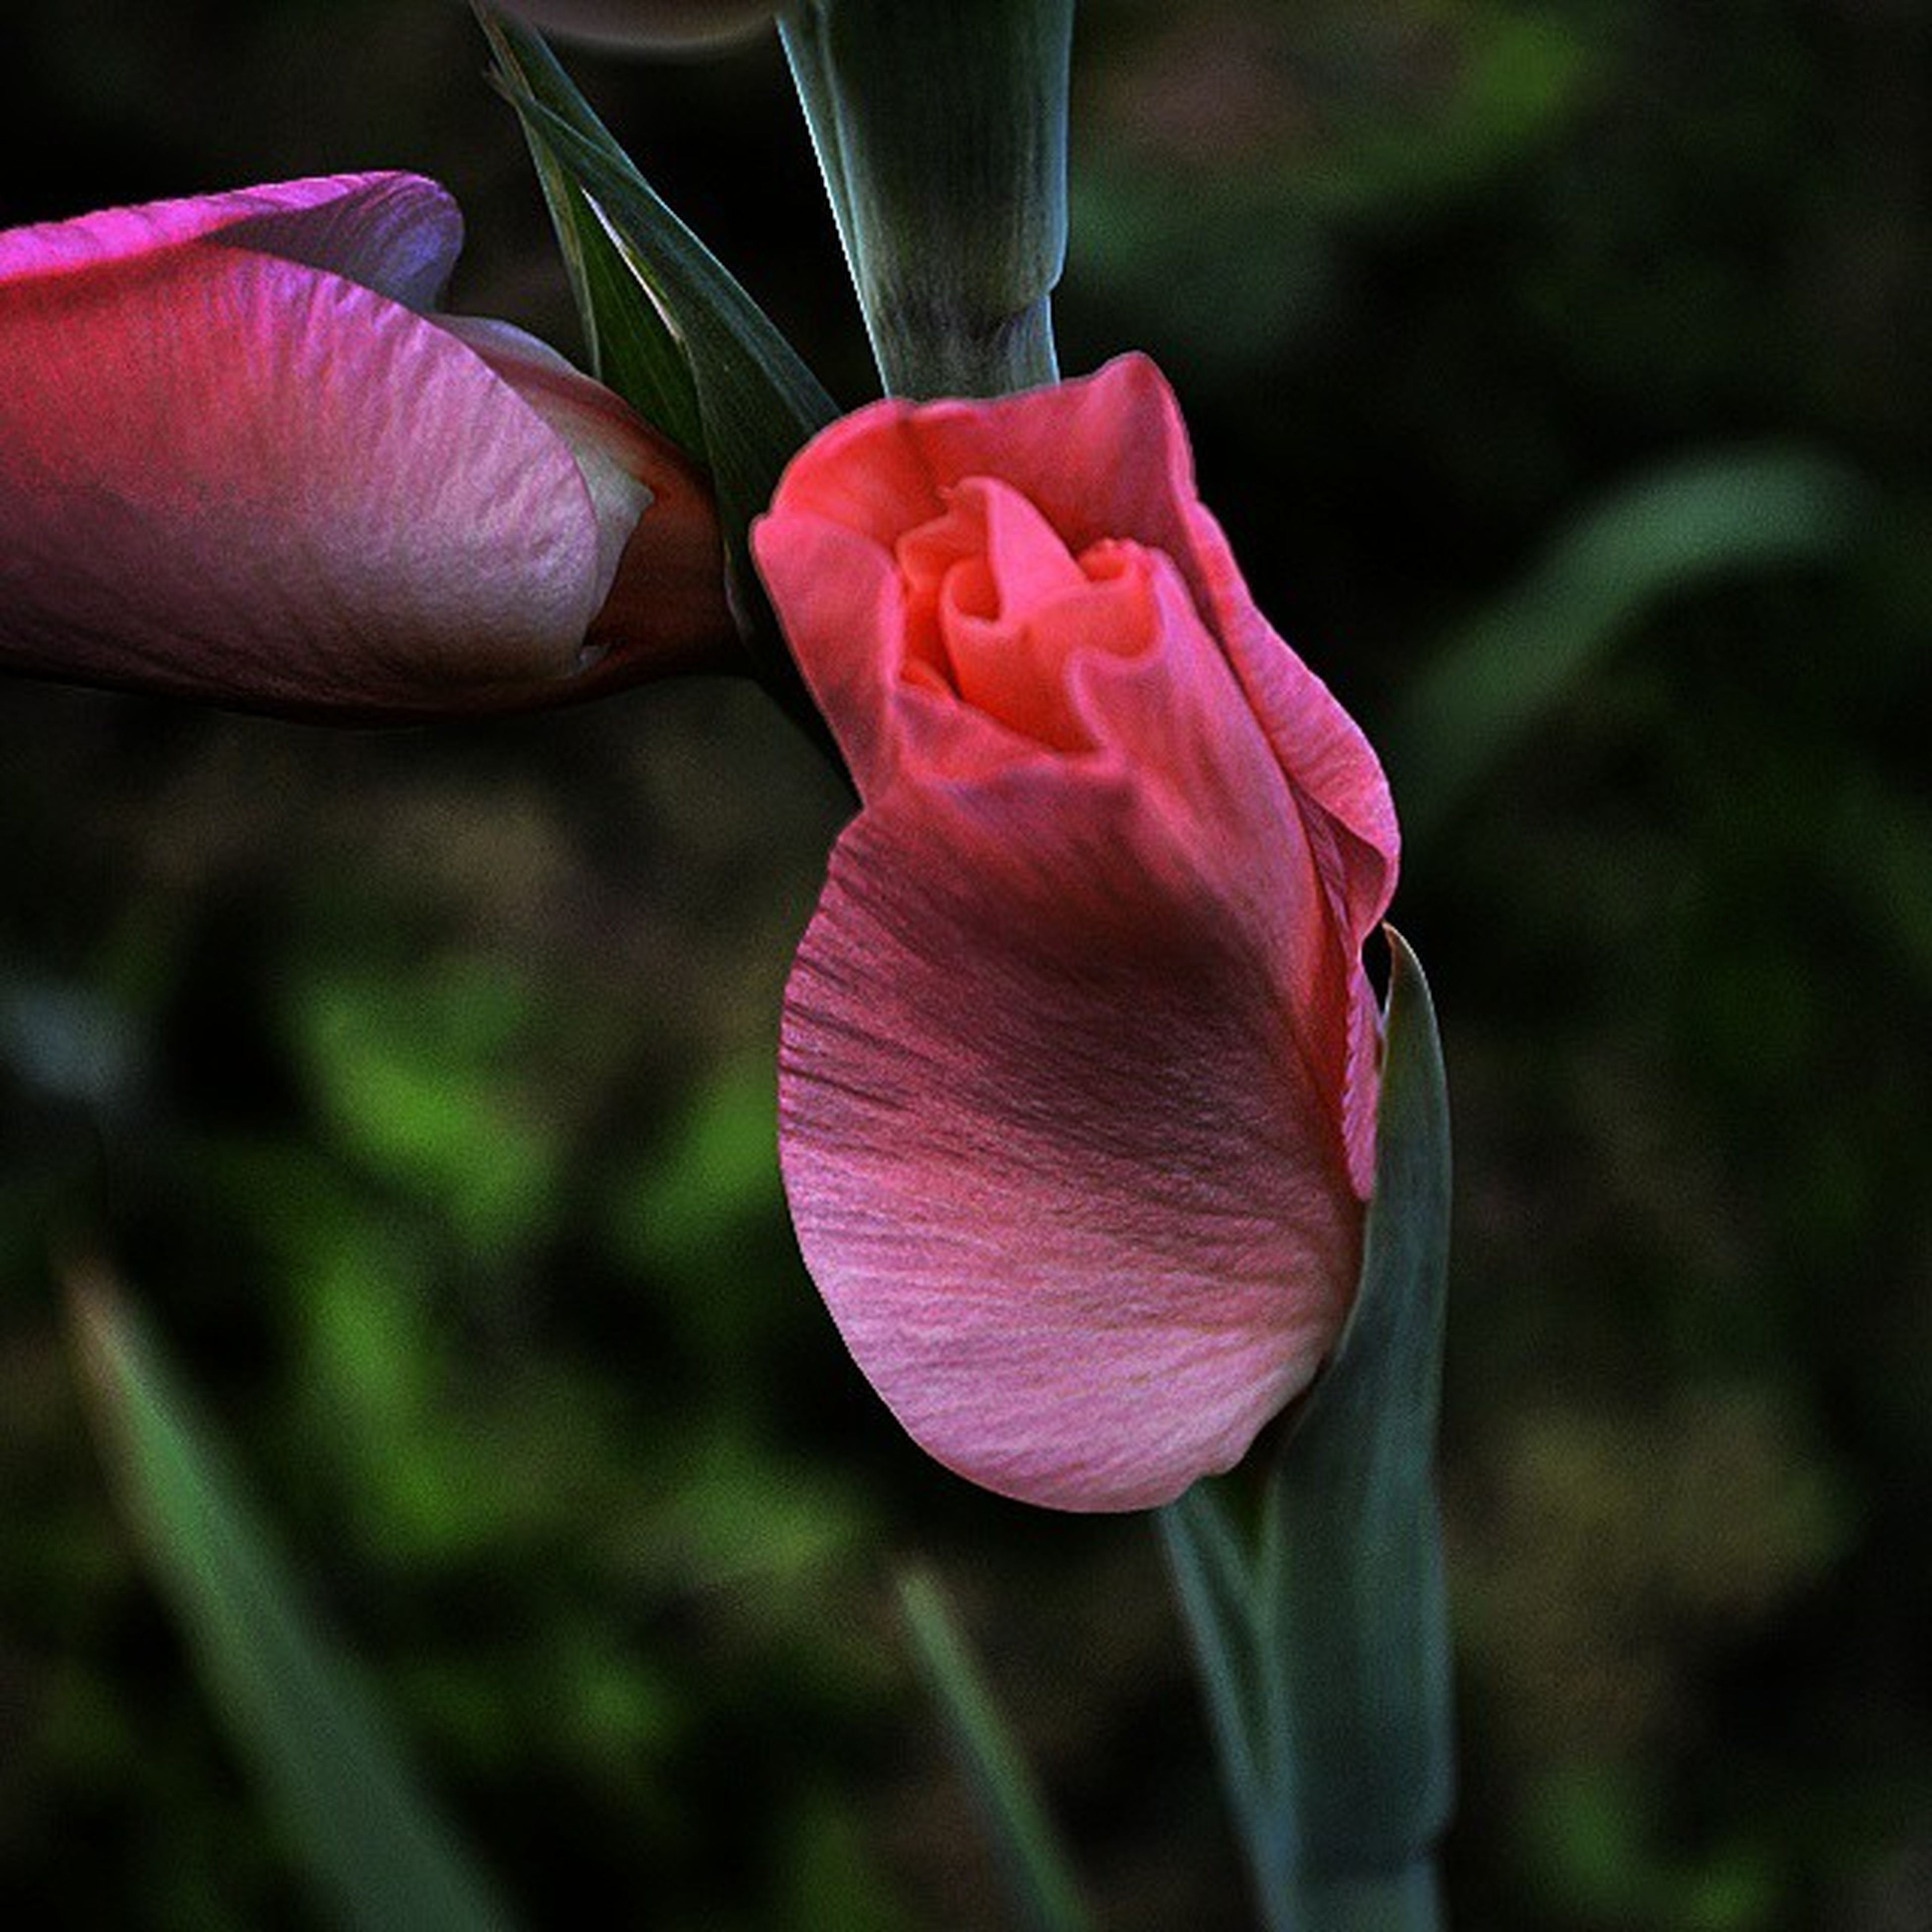 flower, petal, pink color, fragility, flower head, close-up, freshness, focus on foreground, single flower, beauty in nature, growth, pink, nature, stem, red, blooming, tulip, selective focus, outdoors, plant